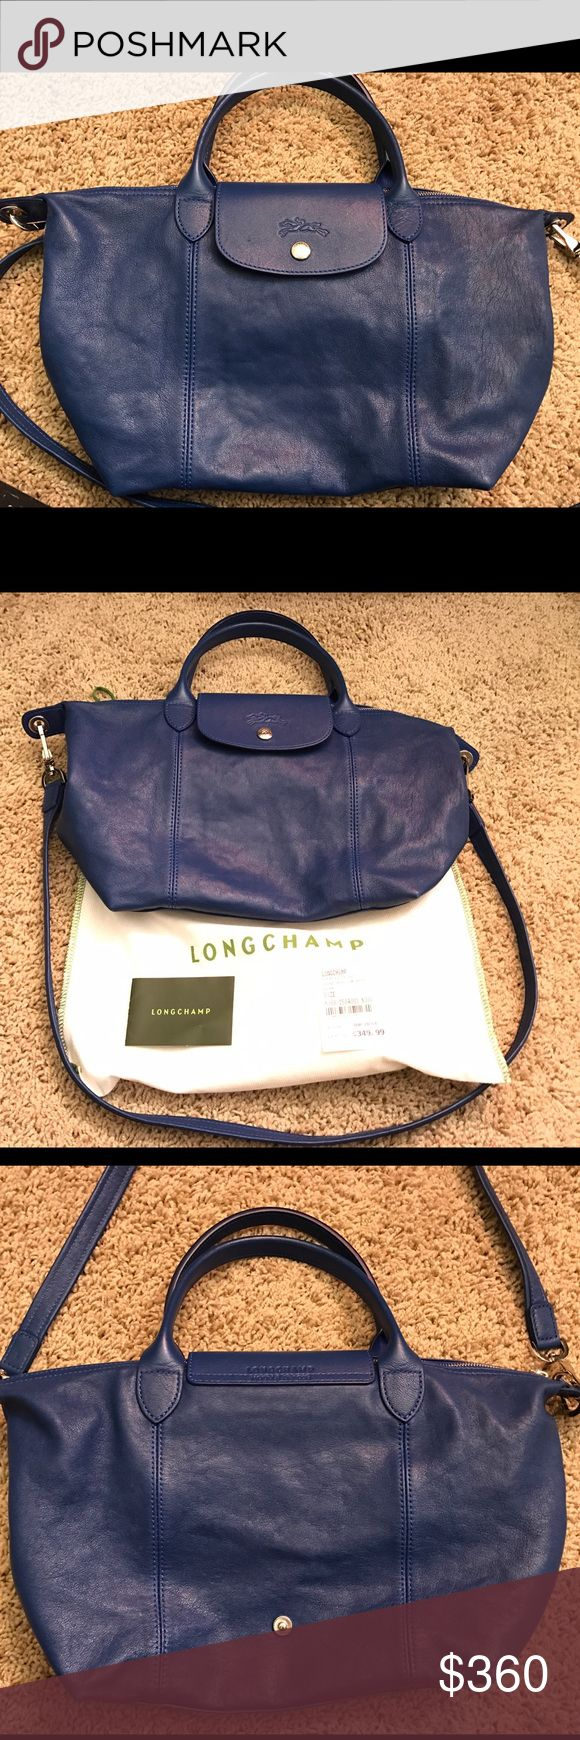 "Longchamp blue le pliage cuir SOLD OUT! Purchased at century 21 department store, I still keep the c21 price tag. The original price is $495. Gently used for a few times, it's in excellent condition, no visible wear and tear. This is a multi-functional crossbody bag and it's super lightweight. supple grained lambskin leather, zip top closure with outer snap tap, dual rolled handles, detachable shoulder strap, embossed logo details, foldable construction. 9 3/4"" L x 9"" H x 6 1/4"" W Longchamp…"